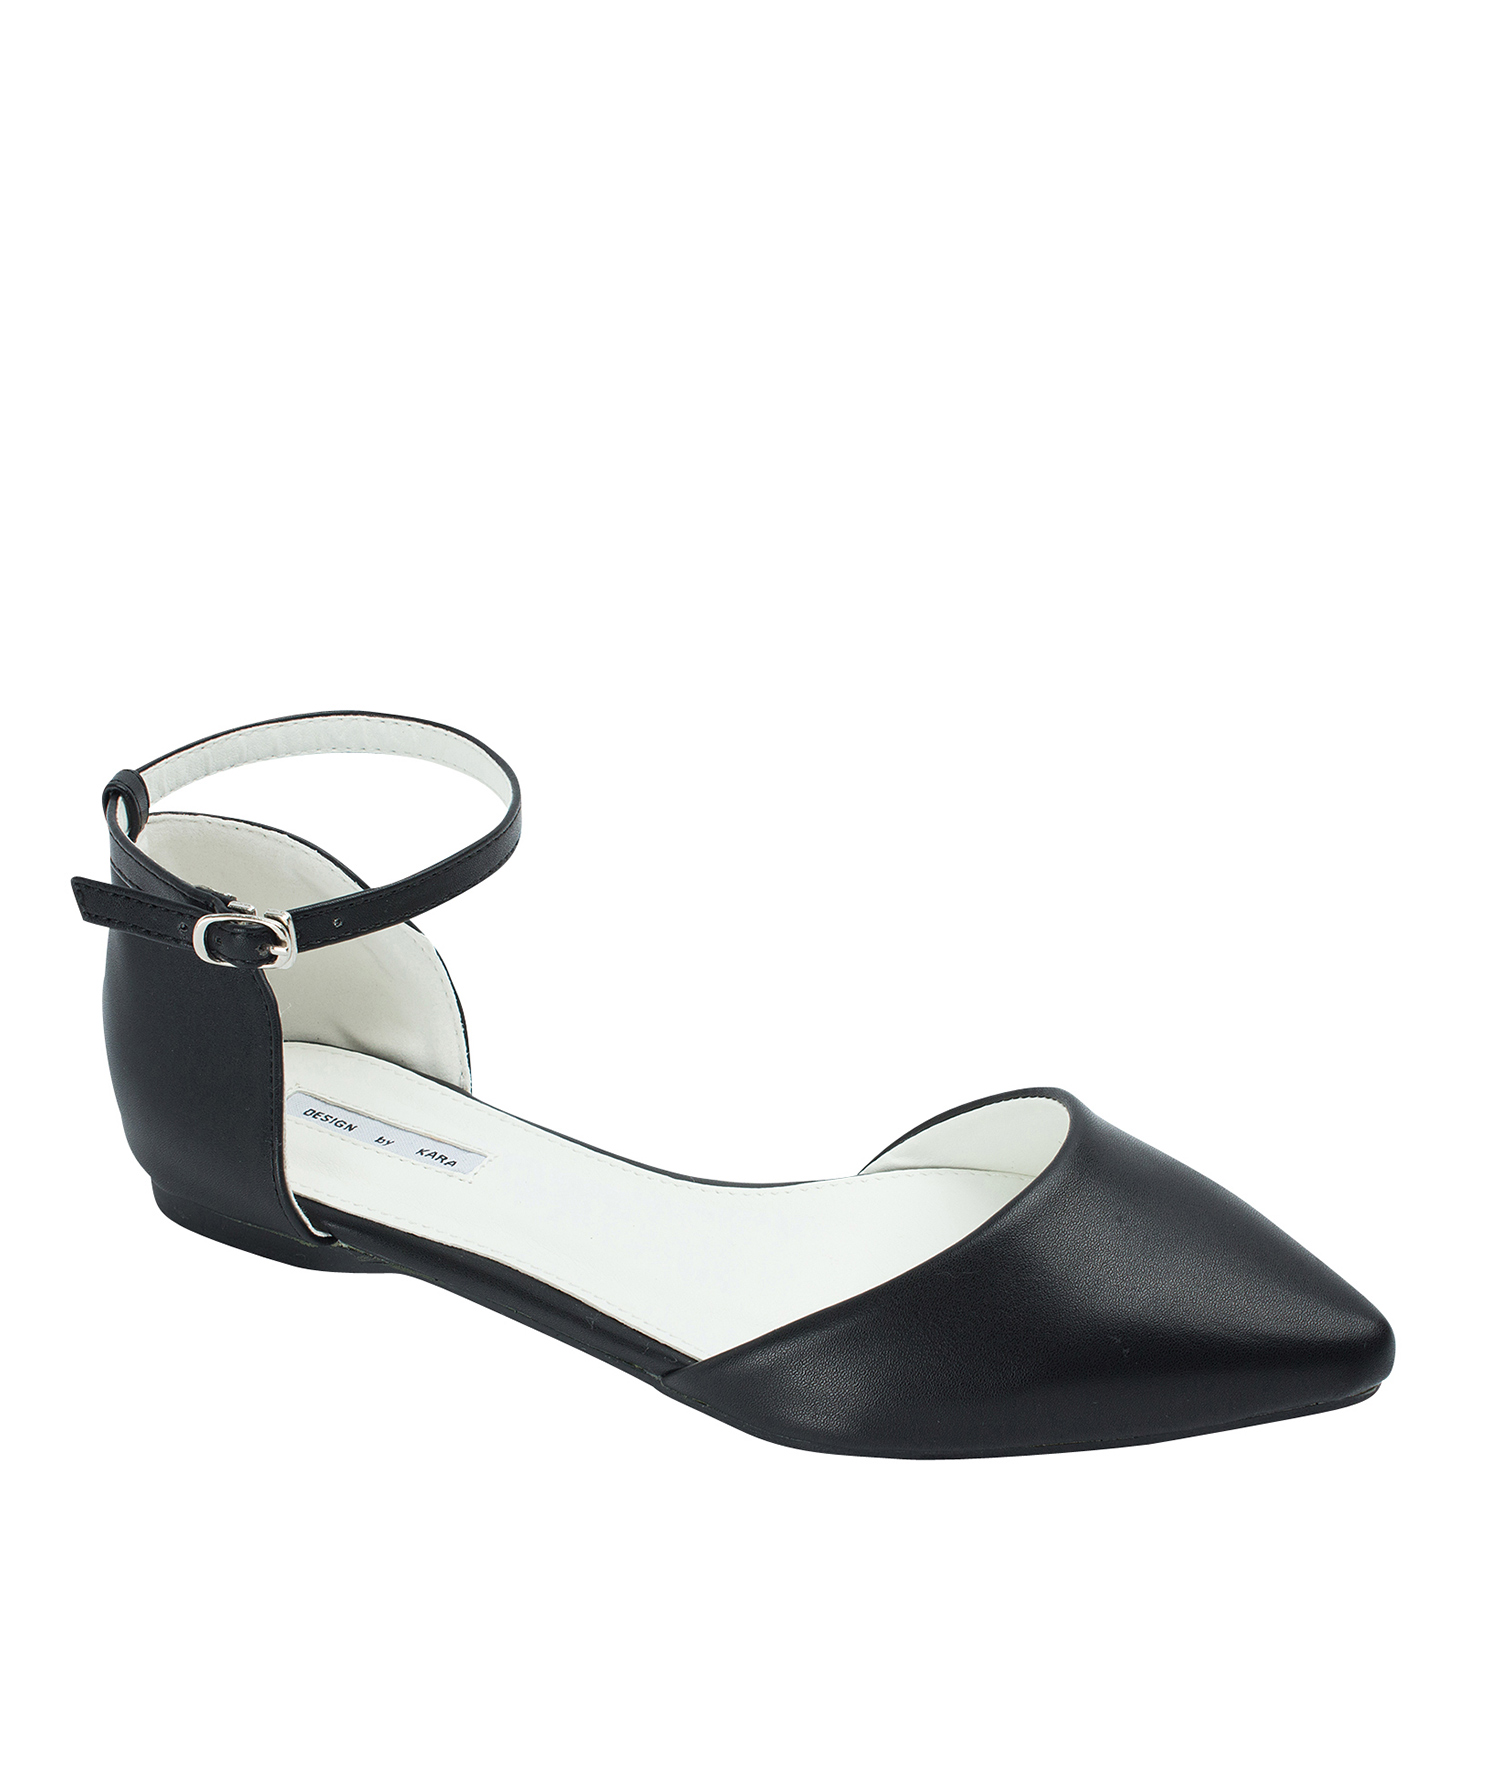 7bc5b8258db69 AnnaKastle Womens Pointed Toe Ankle-Strap d'Orsay Flats Black